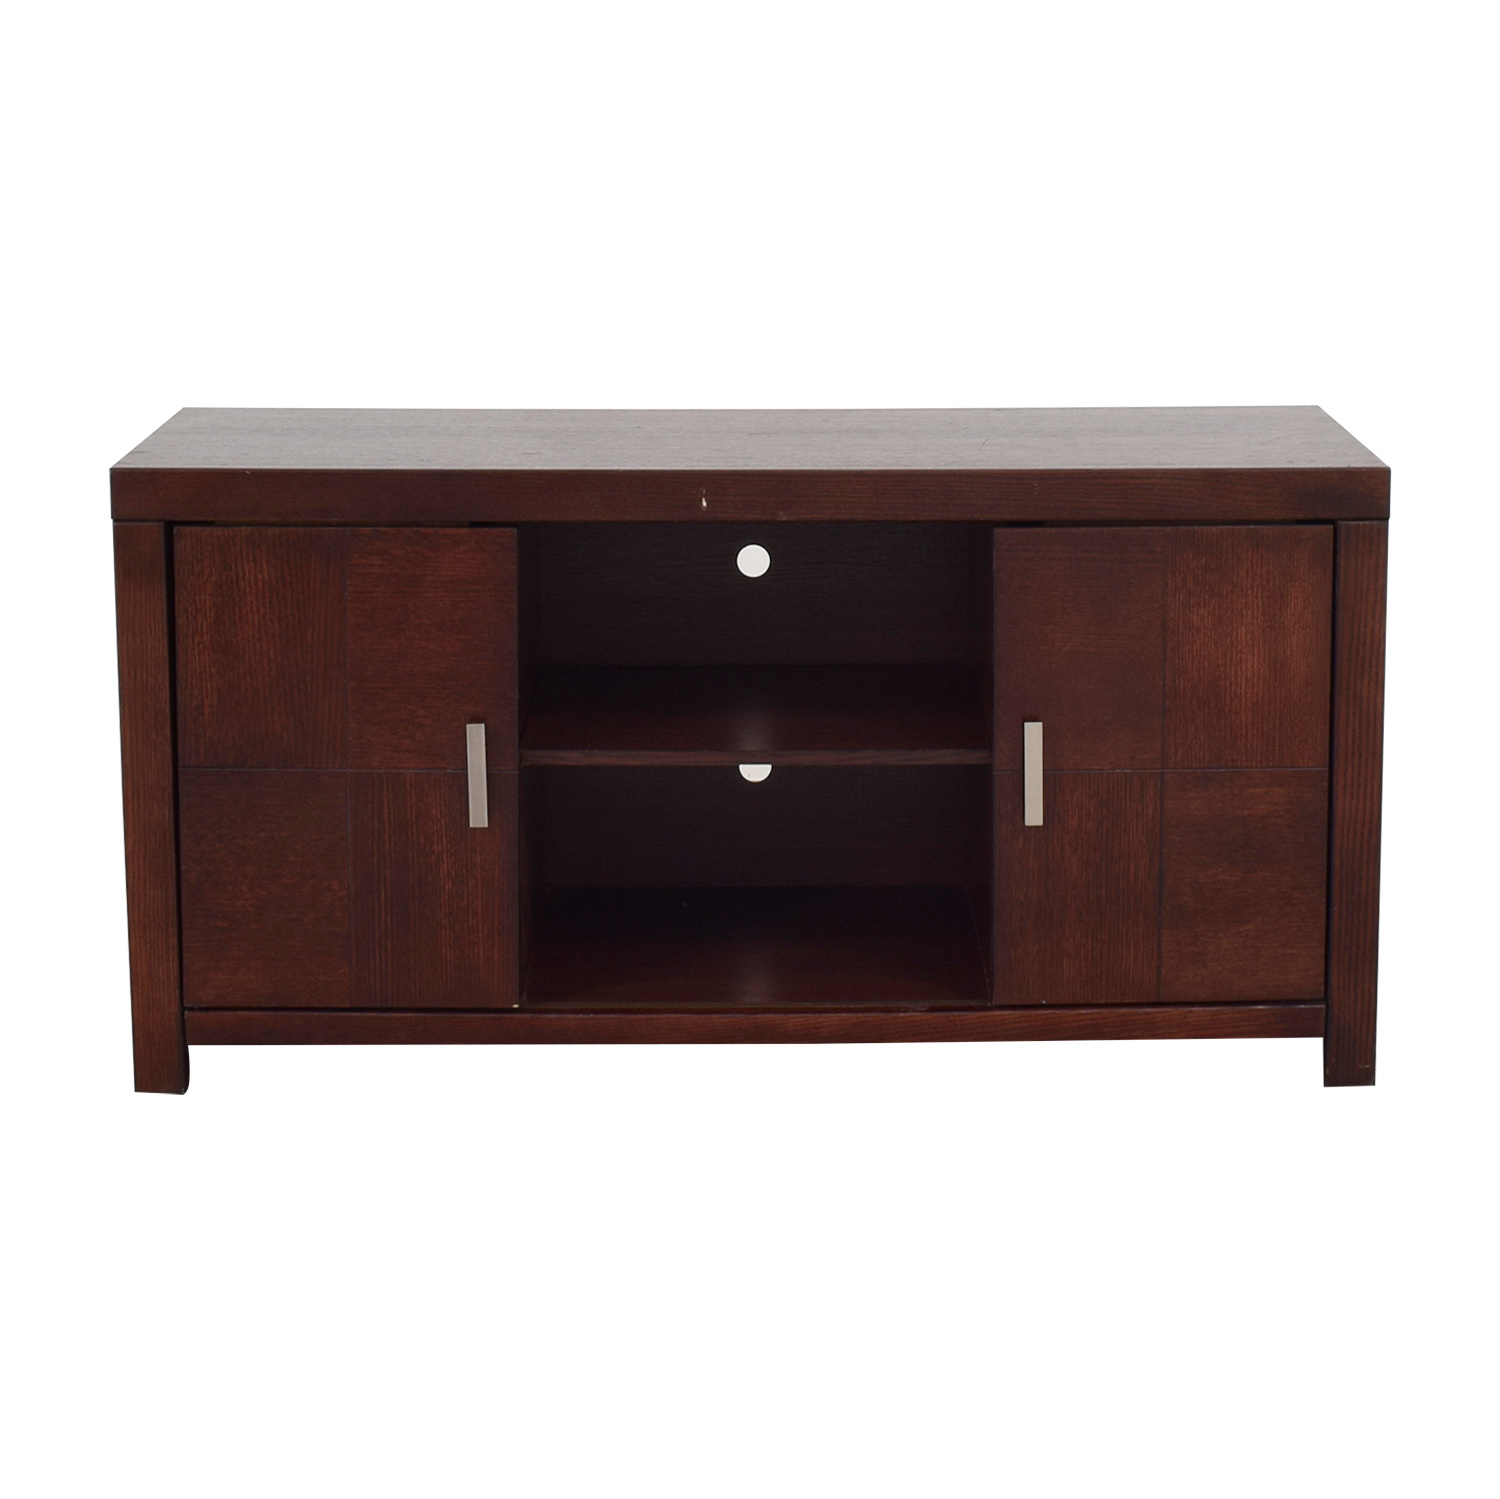 5% OFF - Rooms To Go Rooms To Go TV Stand / Storage